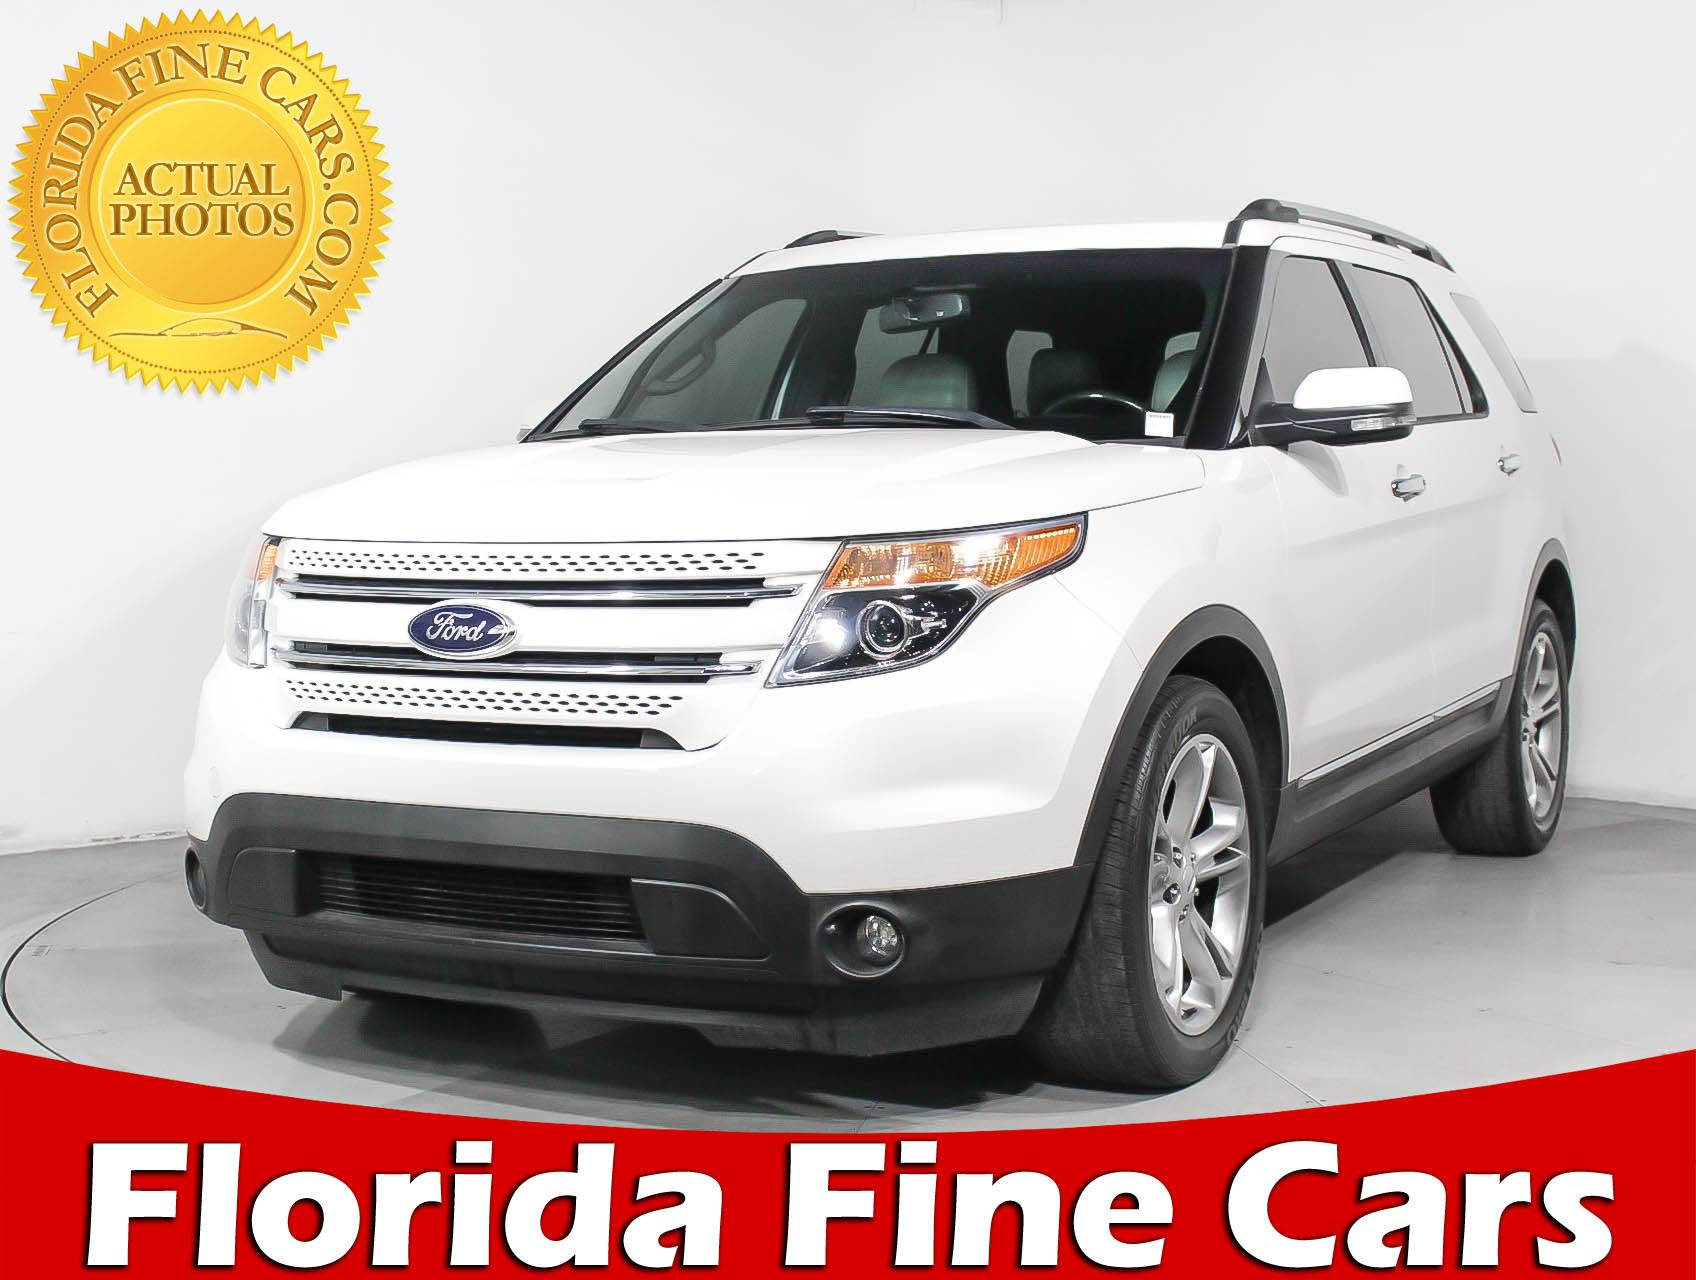 Used 2013 FORD EXPLORER Limited Ecoboost SUV for sale in MIAMI FL